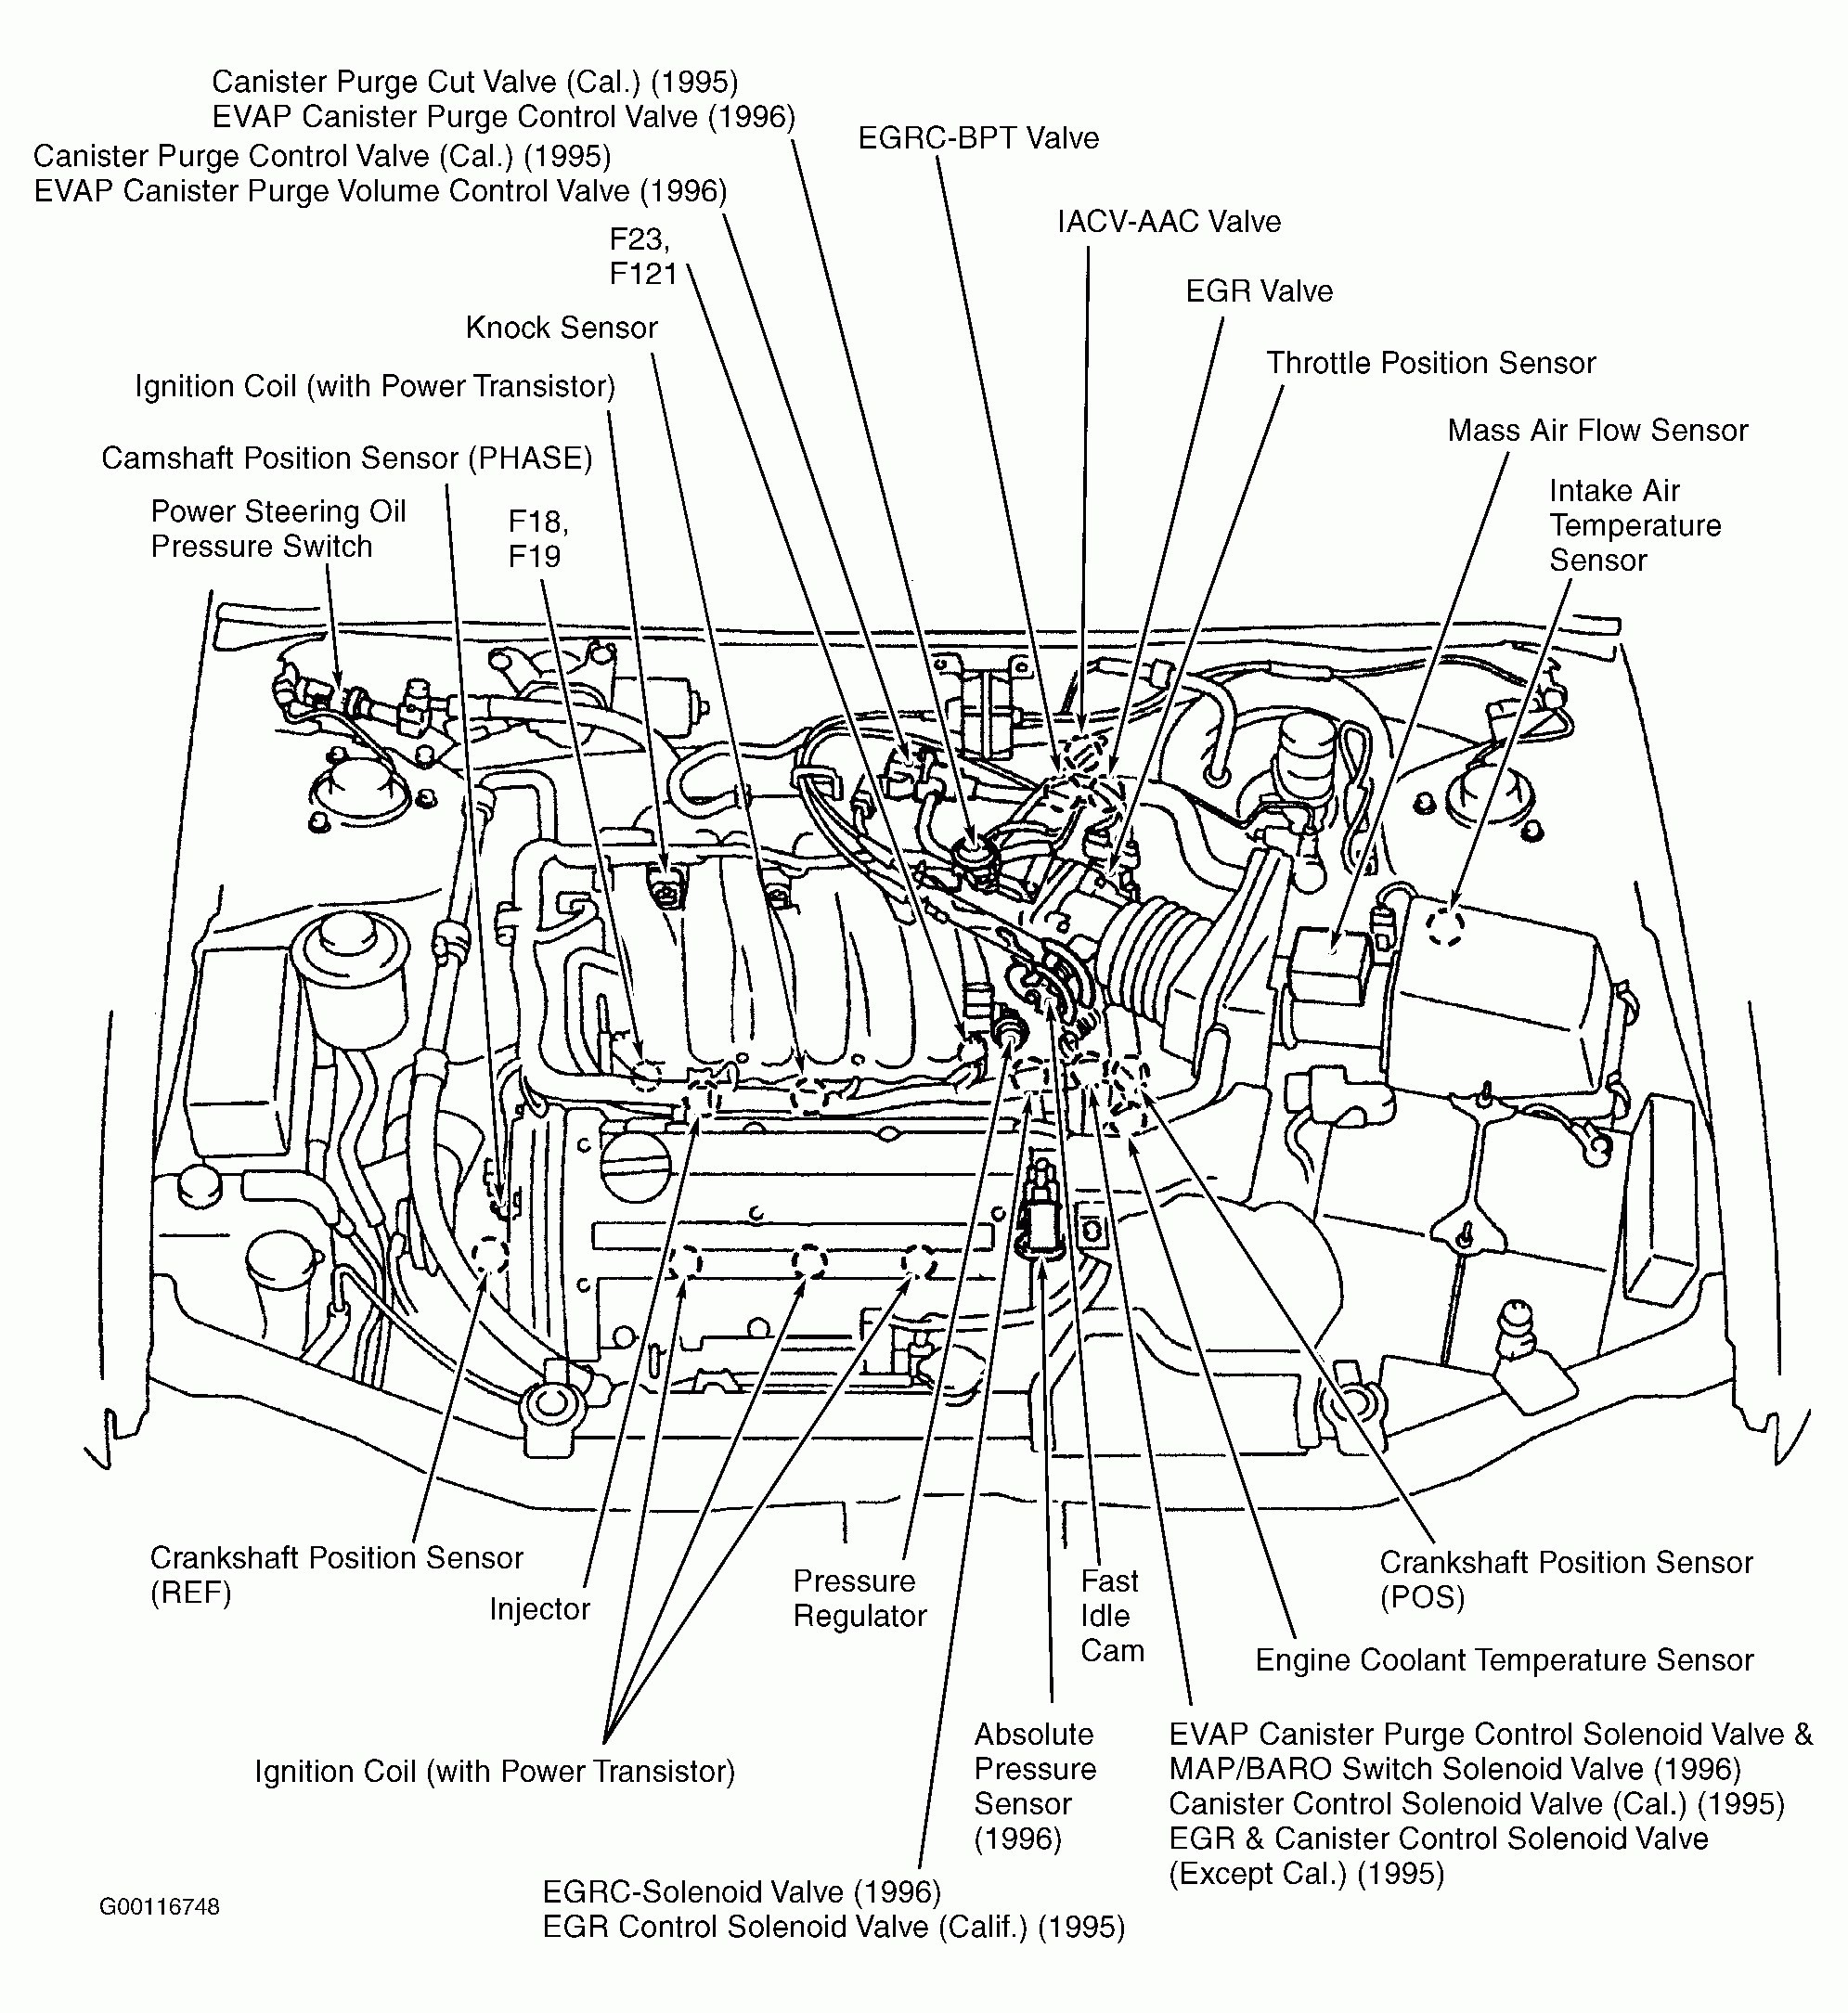 1997 Nissan Altima Engine Diagram 1995 Nissan Maxima Engine Diagram Wiring Diagram Options Of 1997 Nissan Altima Engine Diagram 1995 Nissan Pathfinder Starter Wiring Diagram at Manuals Library